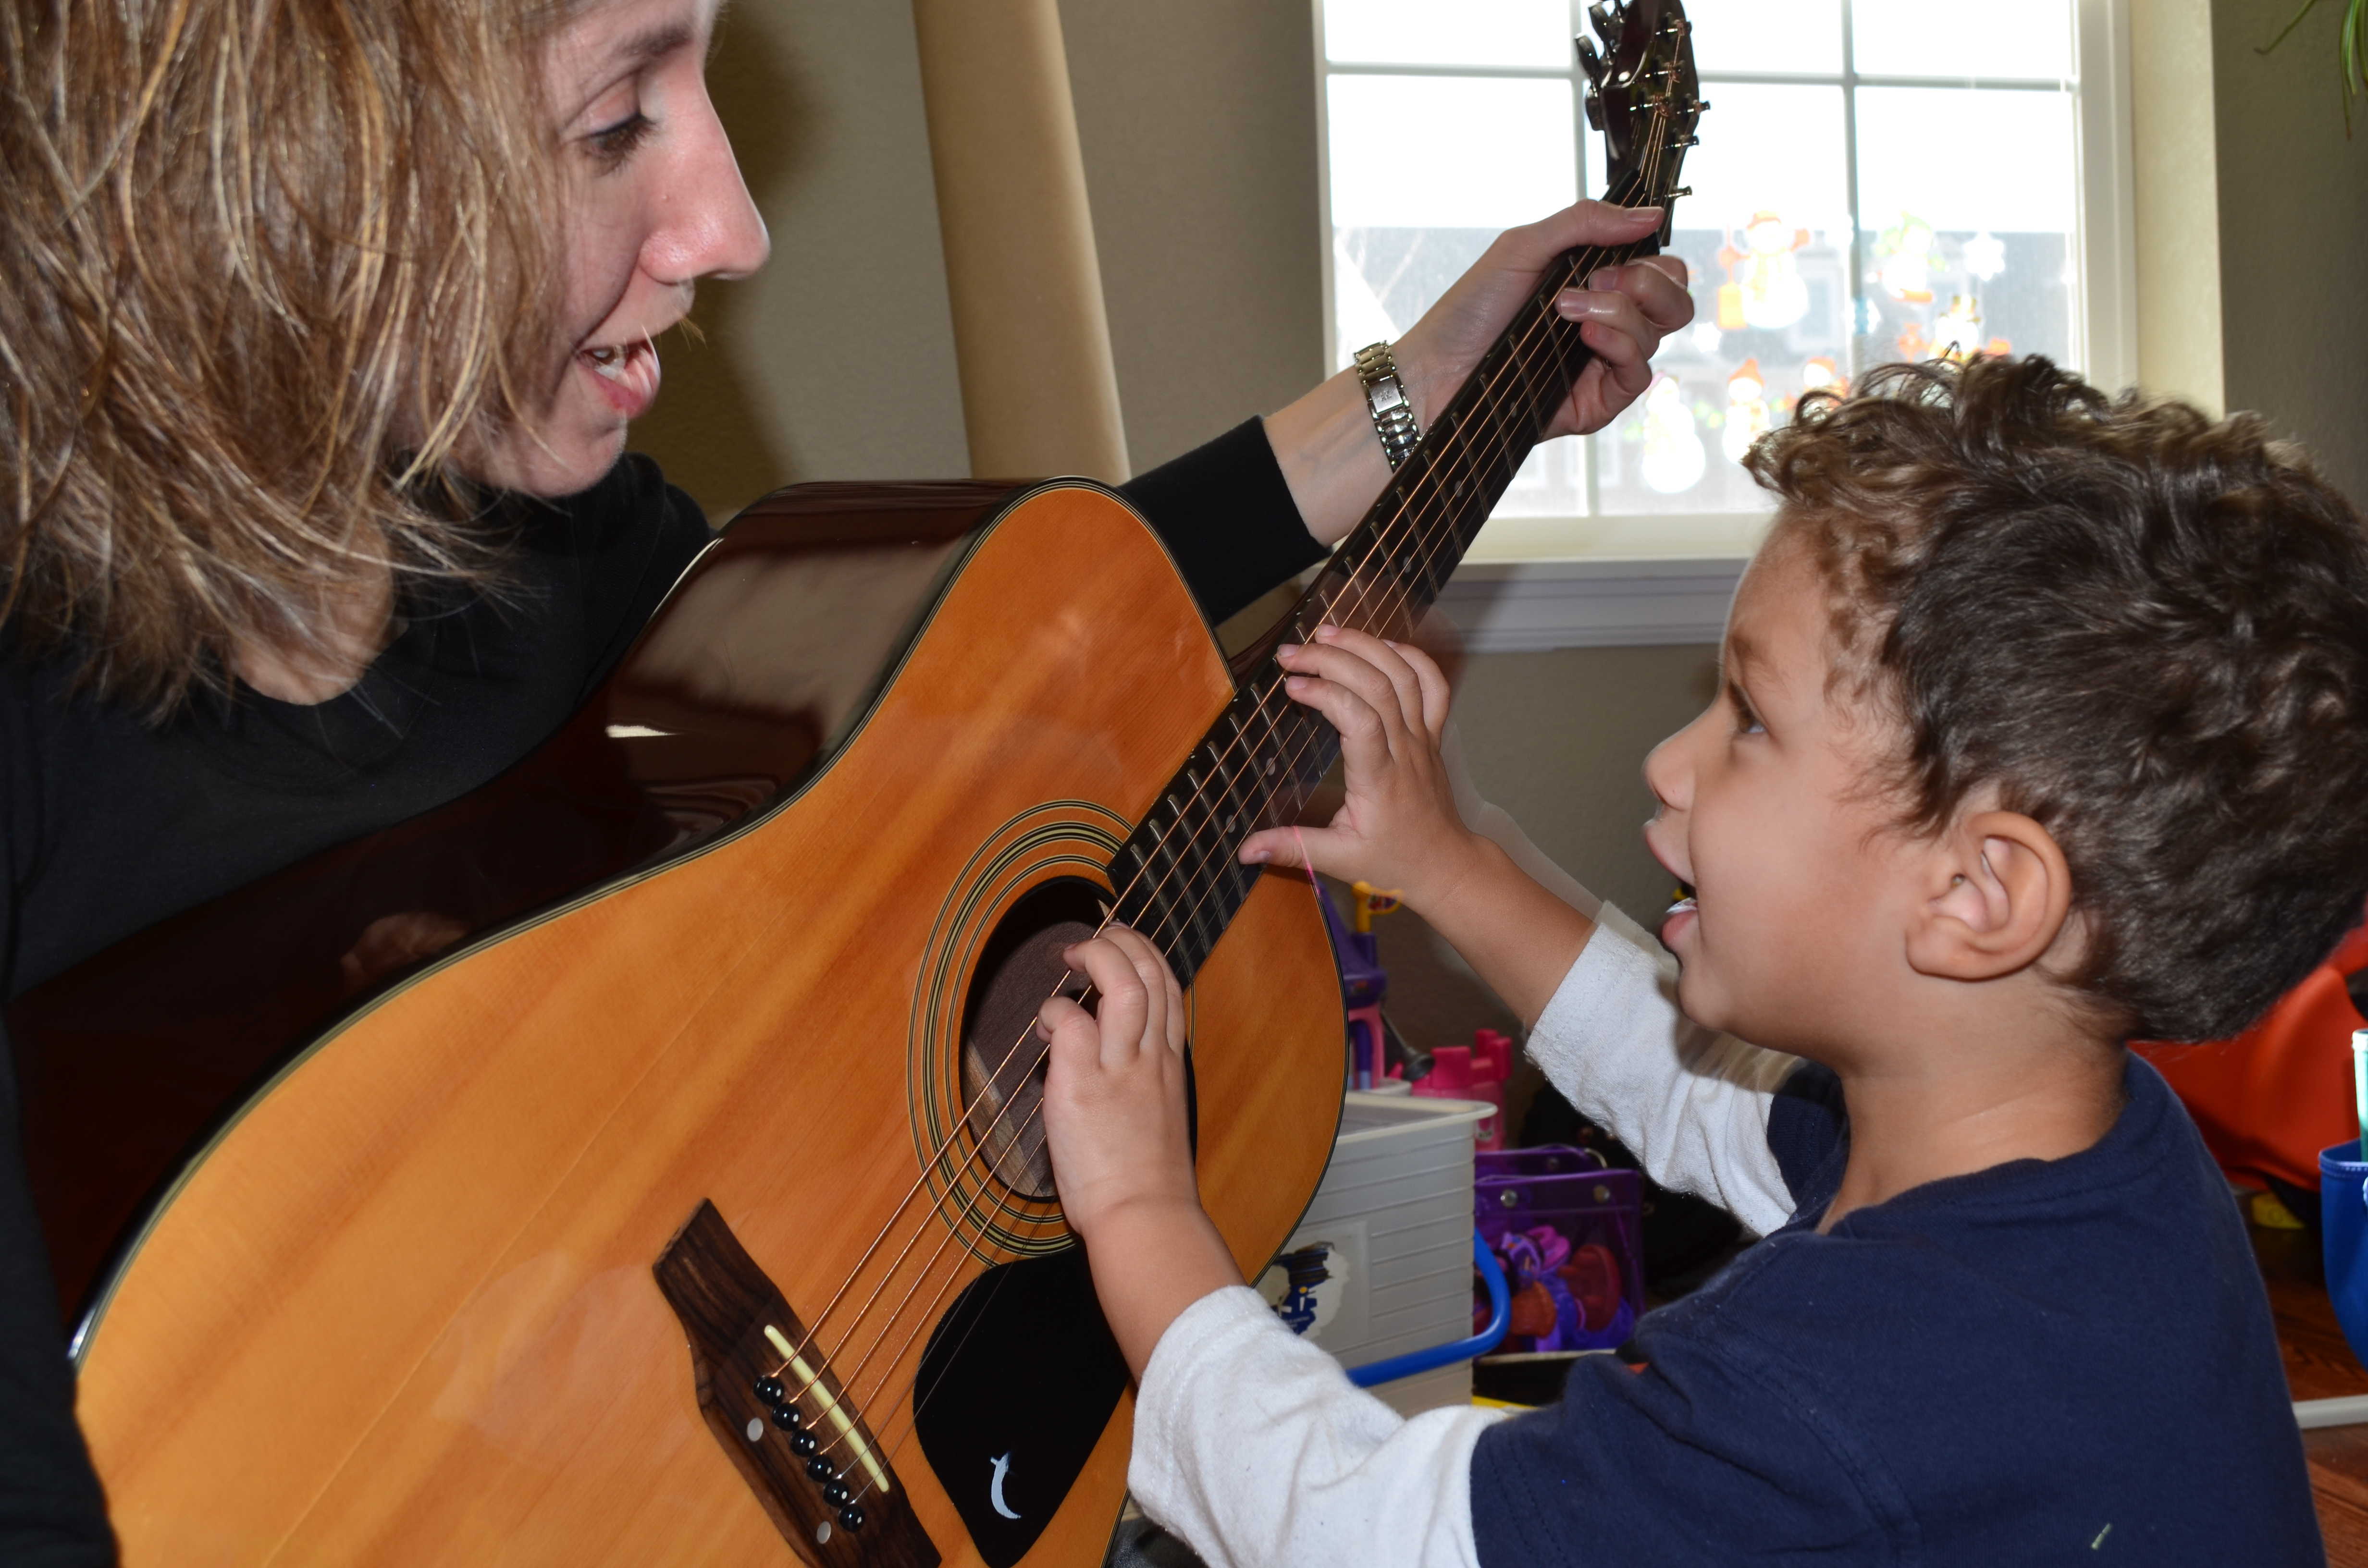 IMPACT OF MUSIC ON CHILDREN WITH DISABILITIES